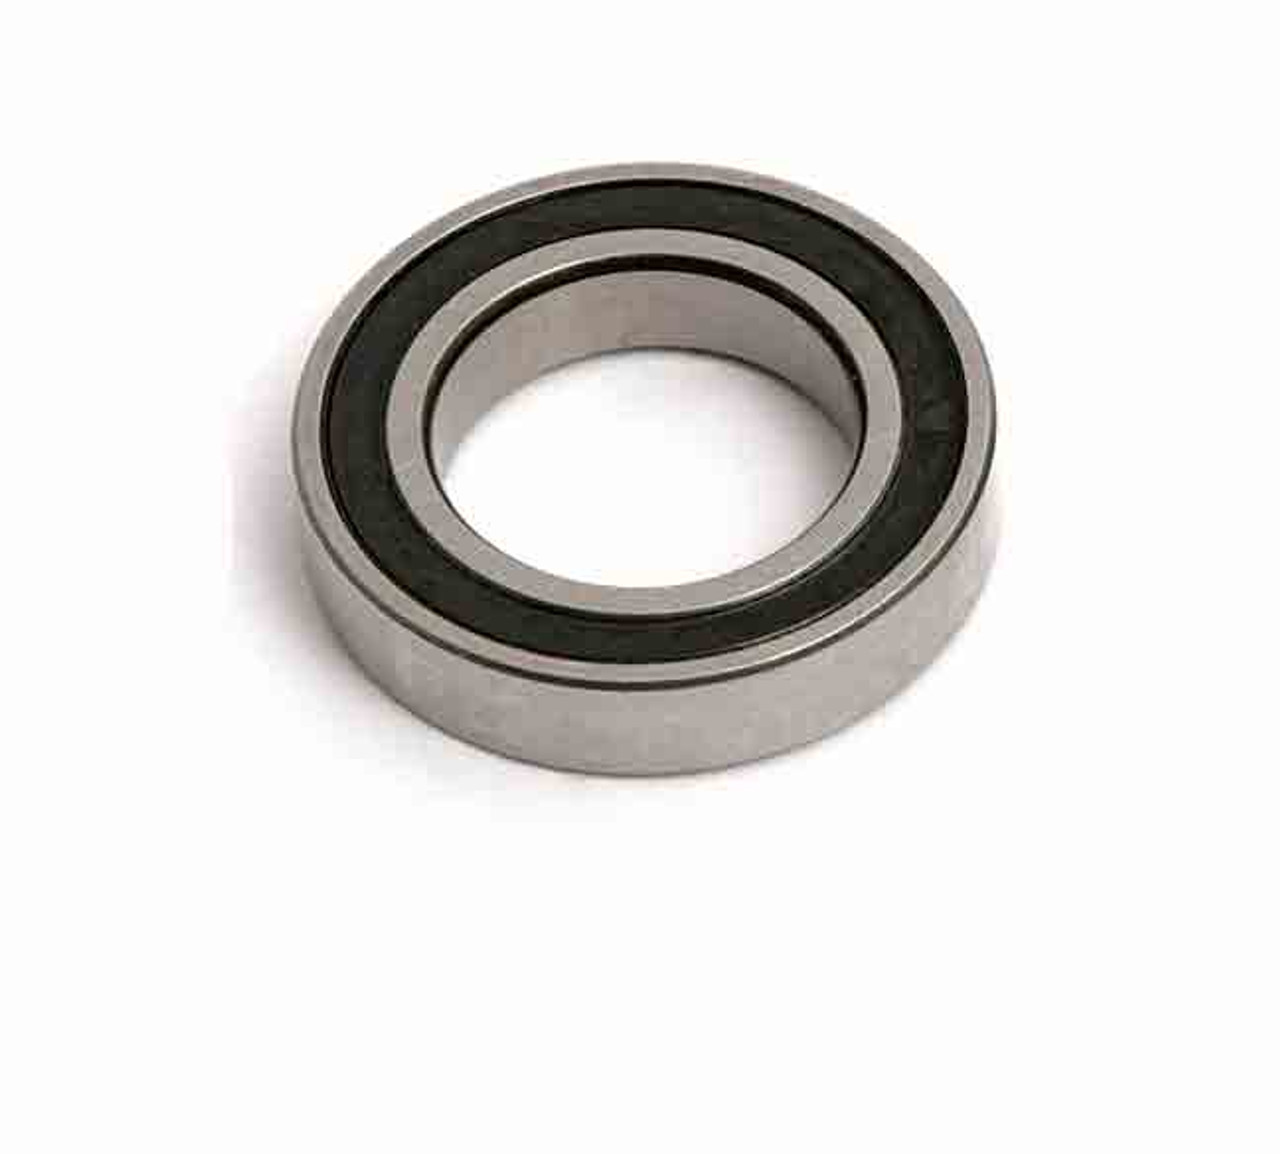 10x22x6 mm 6900-2R Ceramic Si3N4 Rubber Sealed Bearing Bearings 4 PCS 6900-2RS